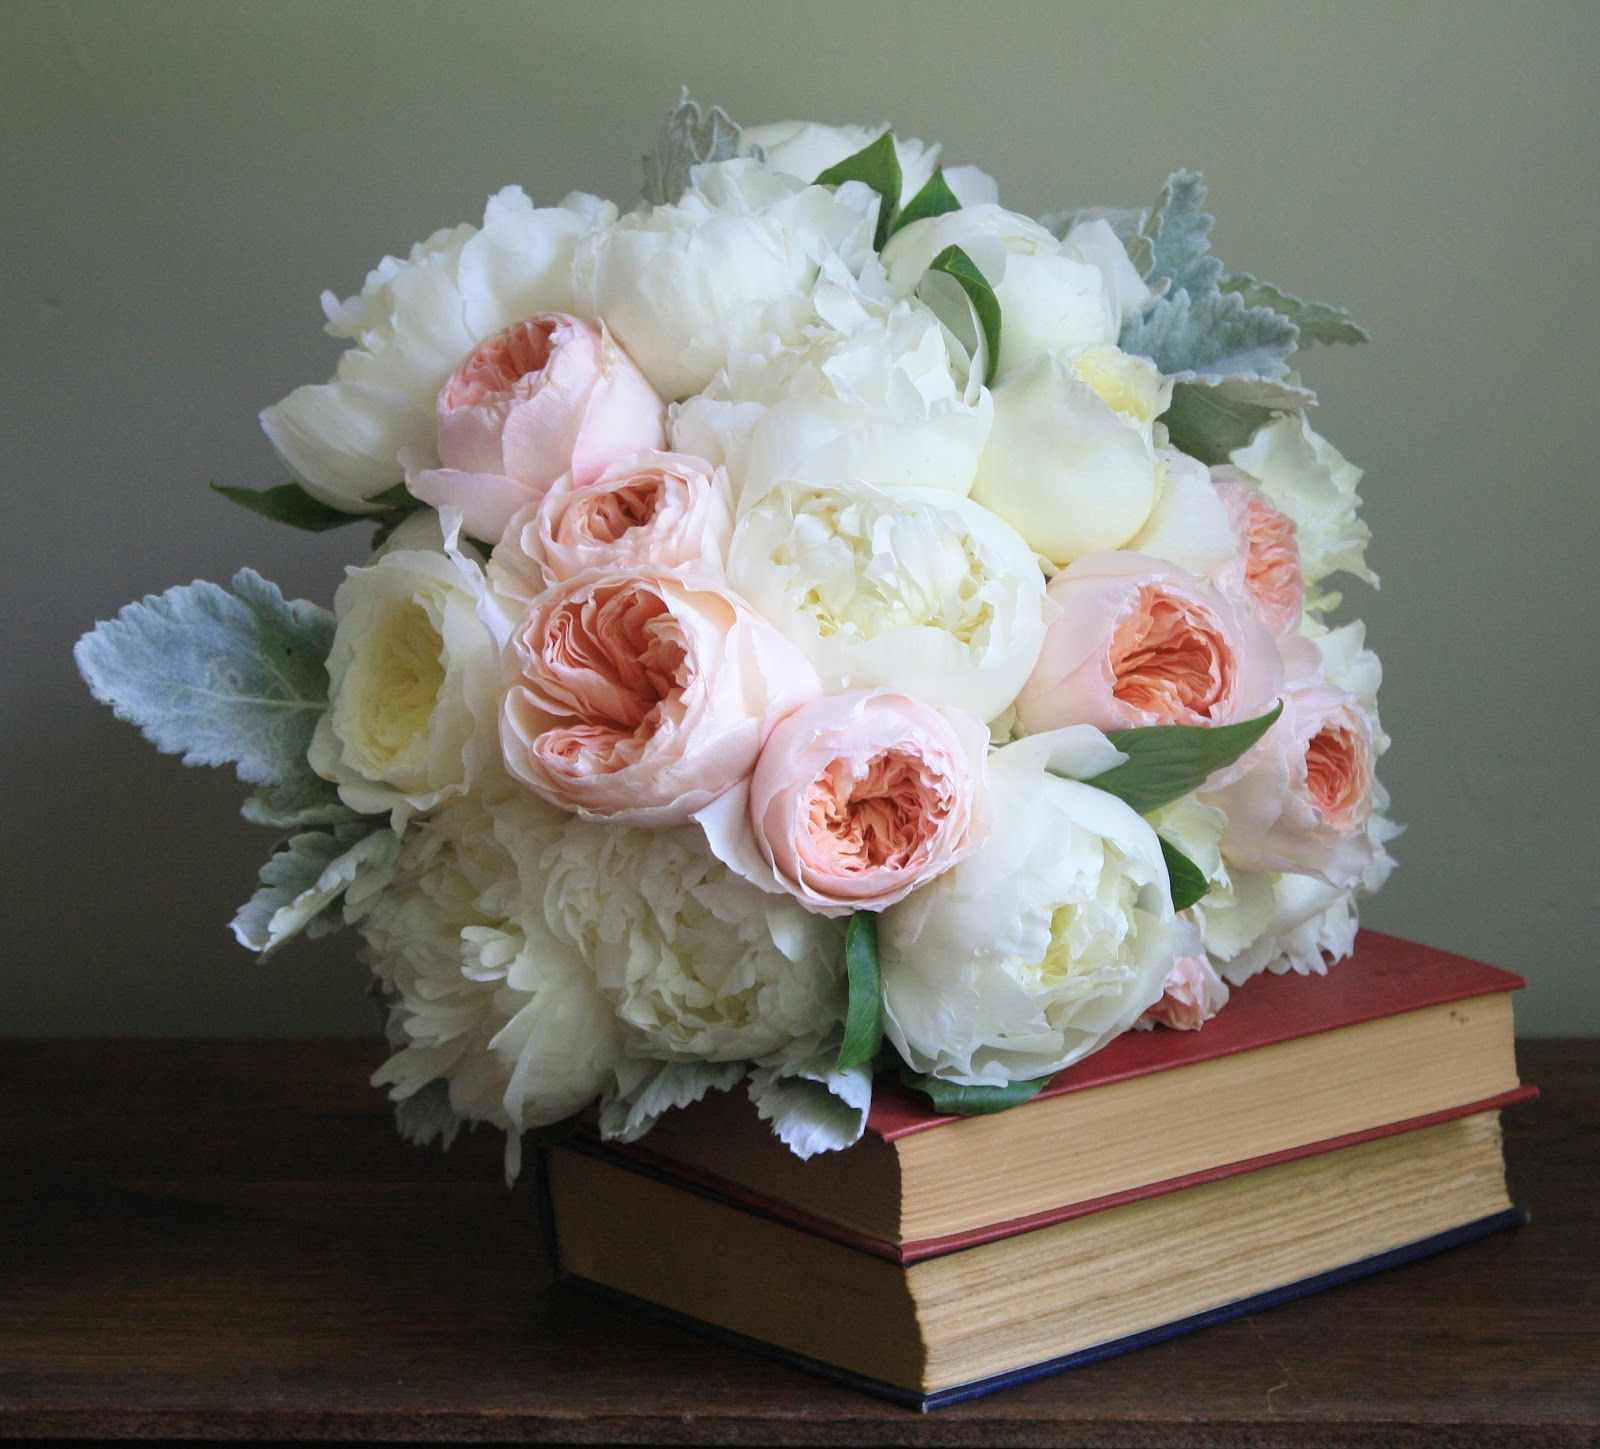 The bridesmaids carried lush bouquets of coral charm peonies, hypericum berry, garden roses, and dusty miller.